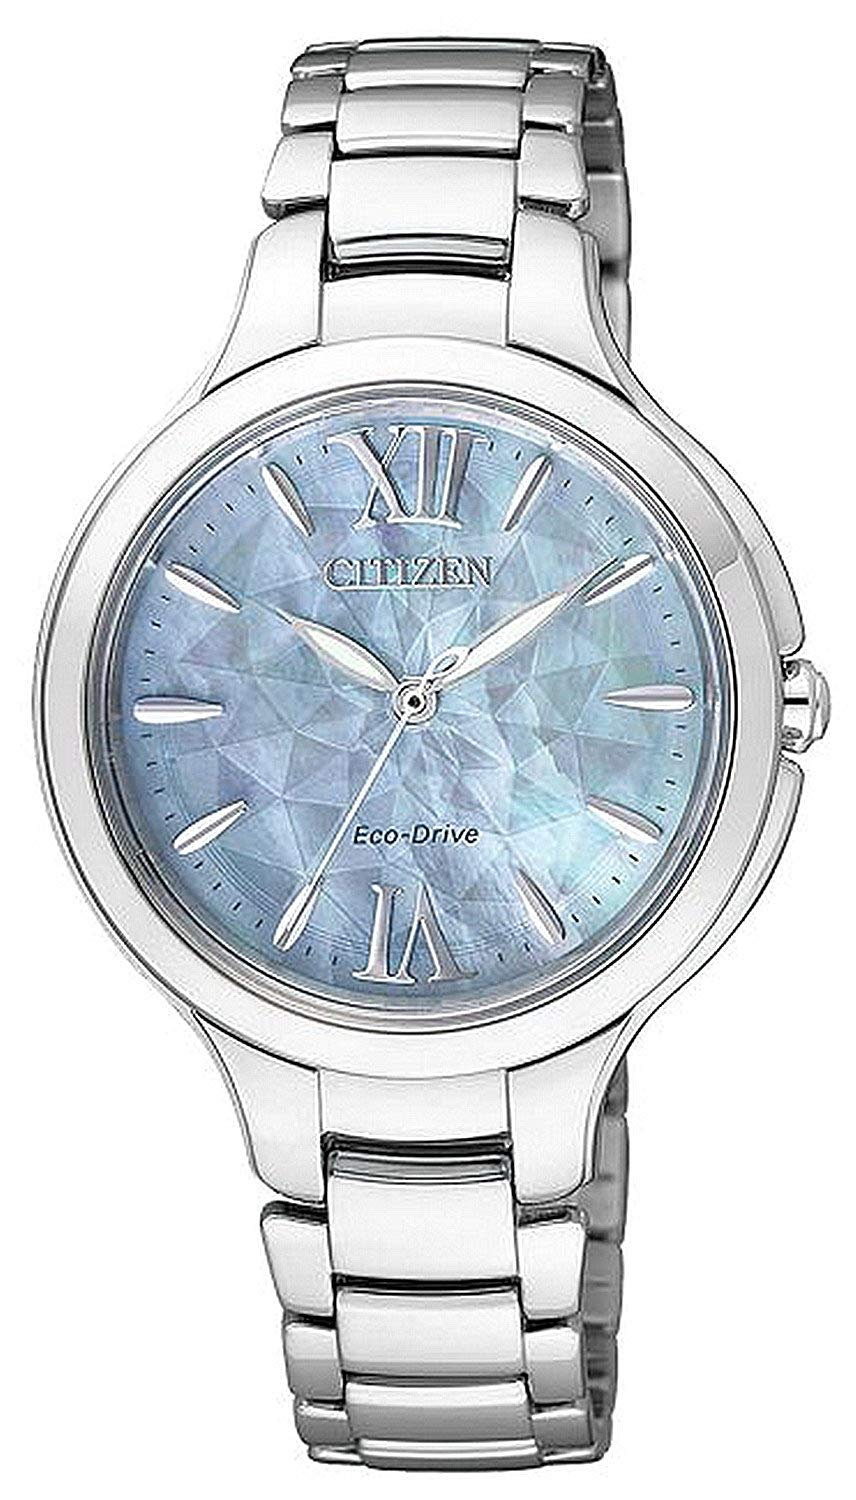 CITIZEN LADY OROLOGIO DONNA EP5990-50D